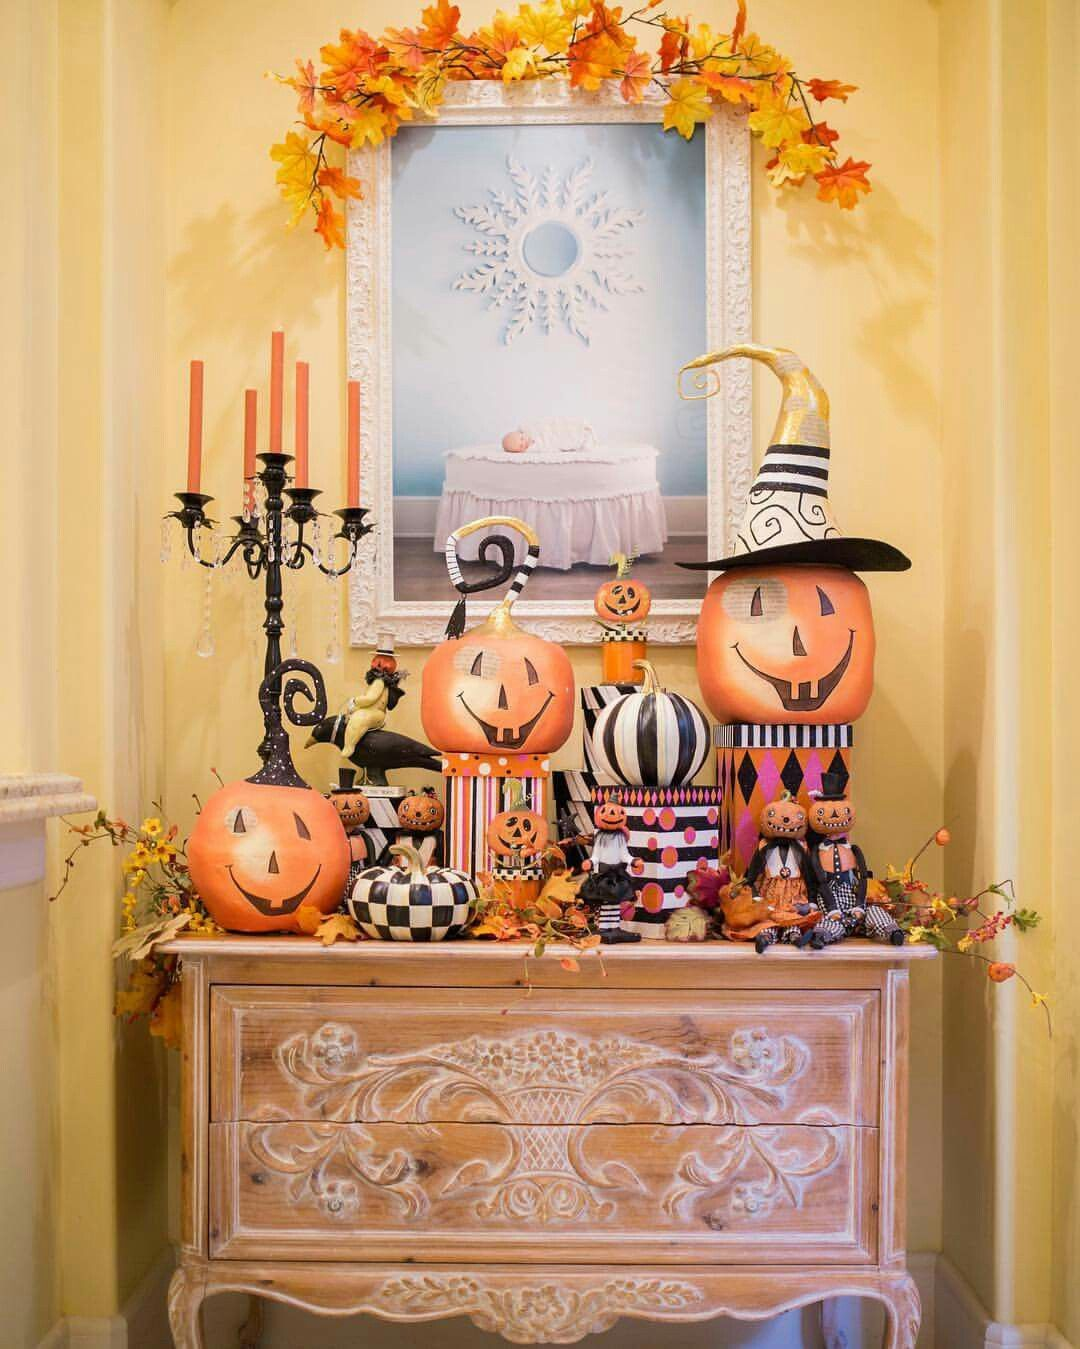 Pin by Pam Mitchell on Halloween Pinterest Halloween ideas - Pinterest Halloween Decorations